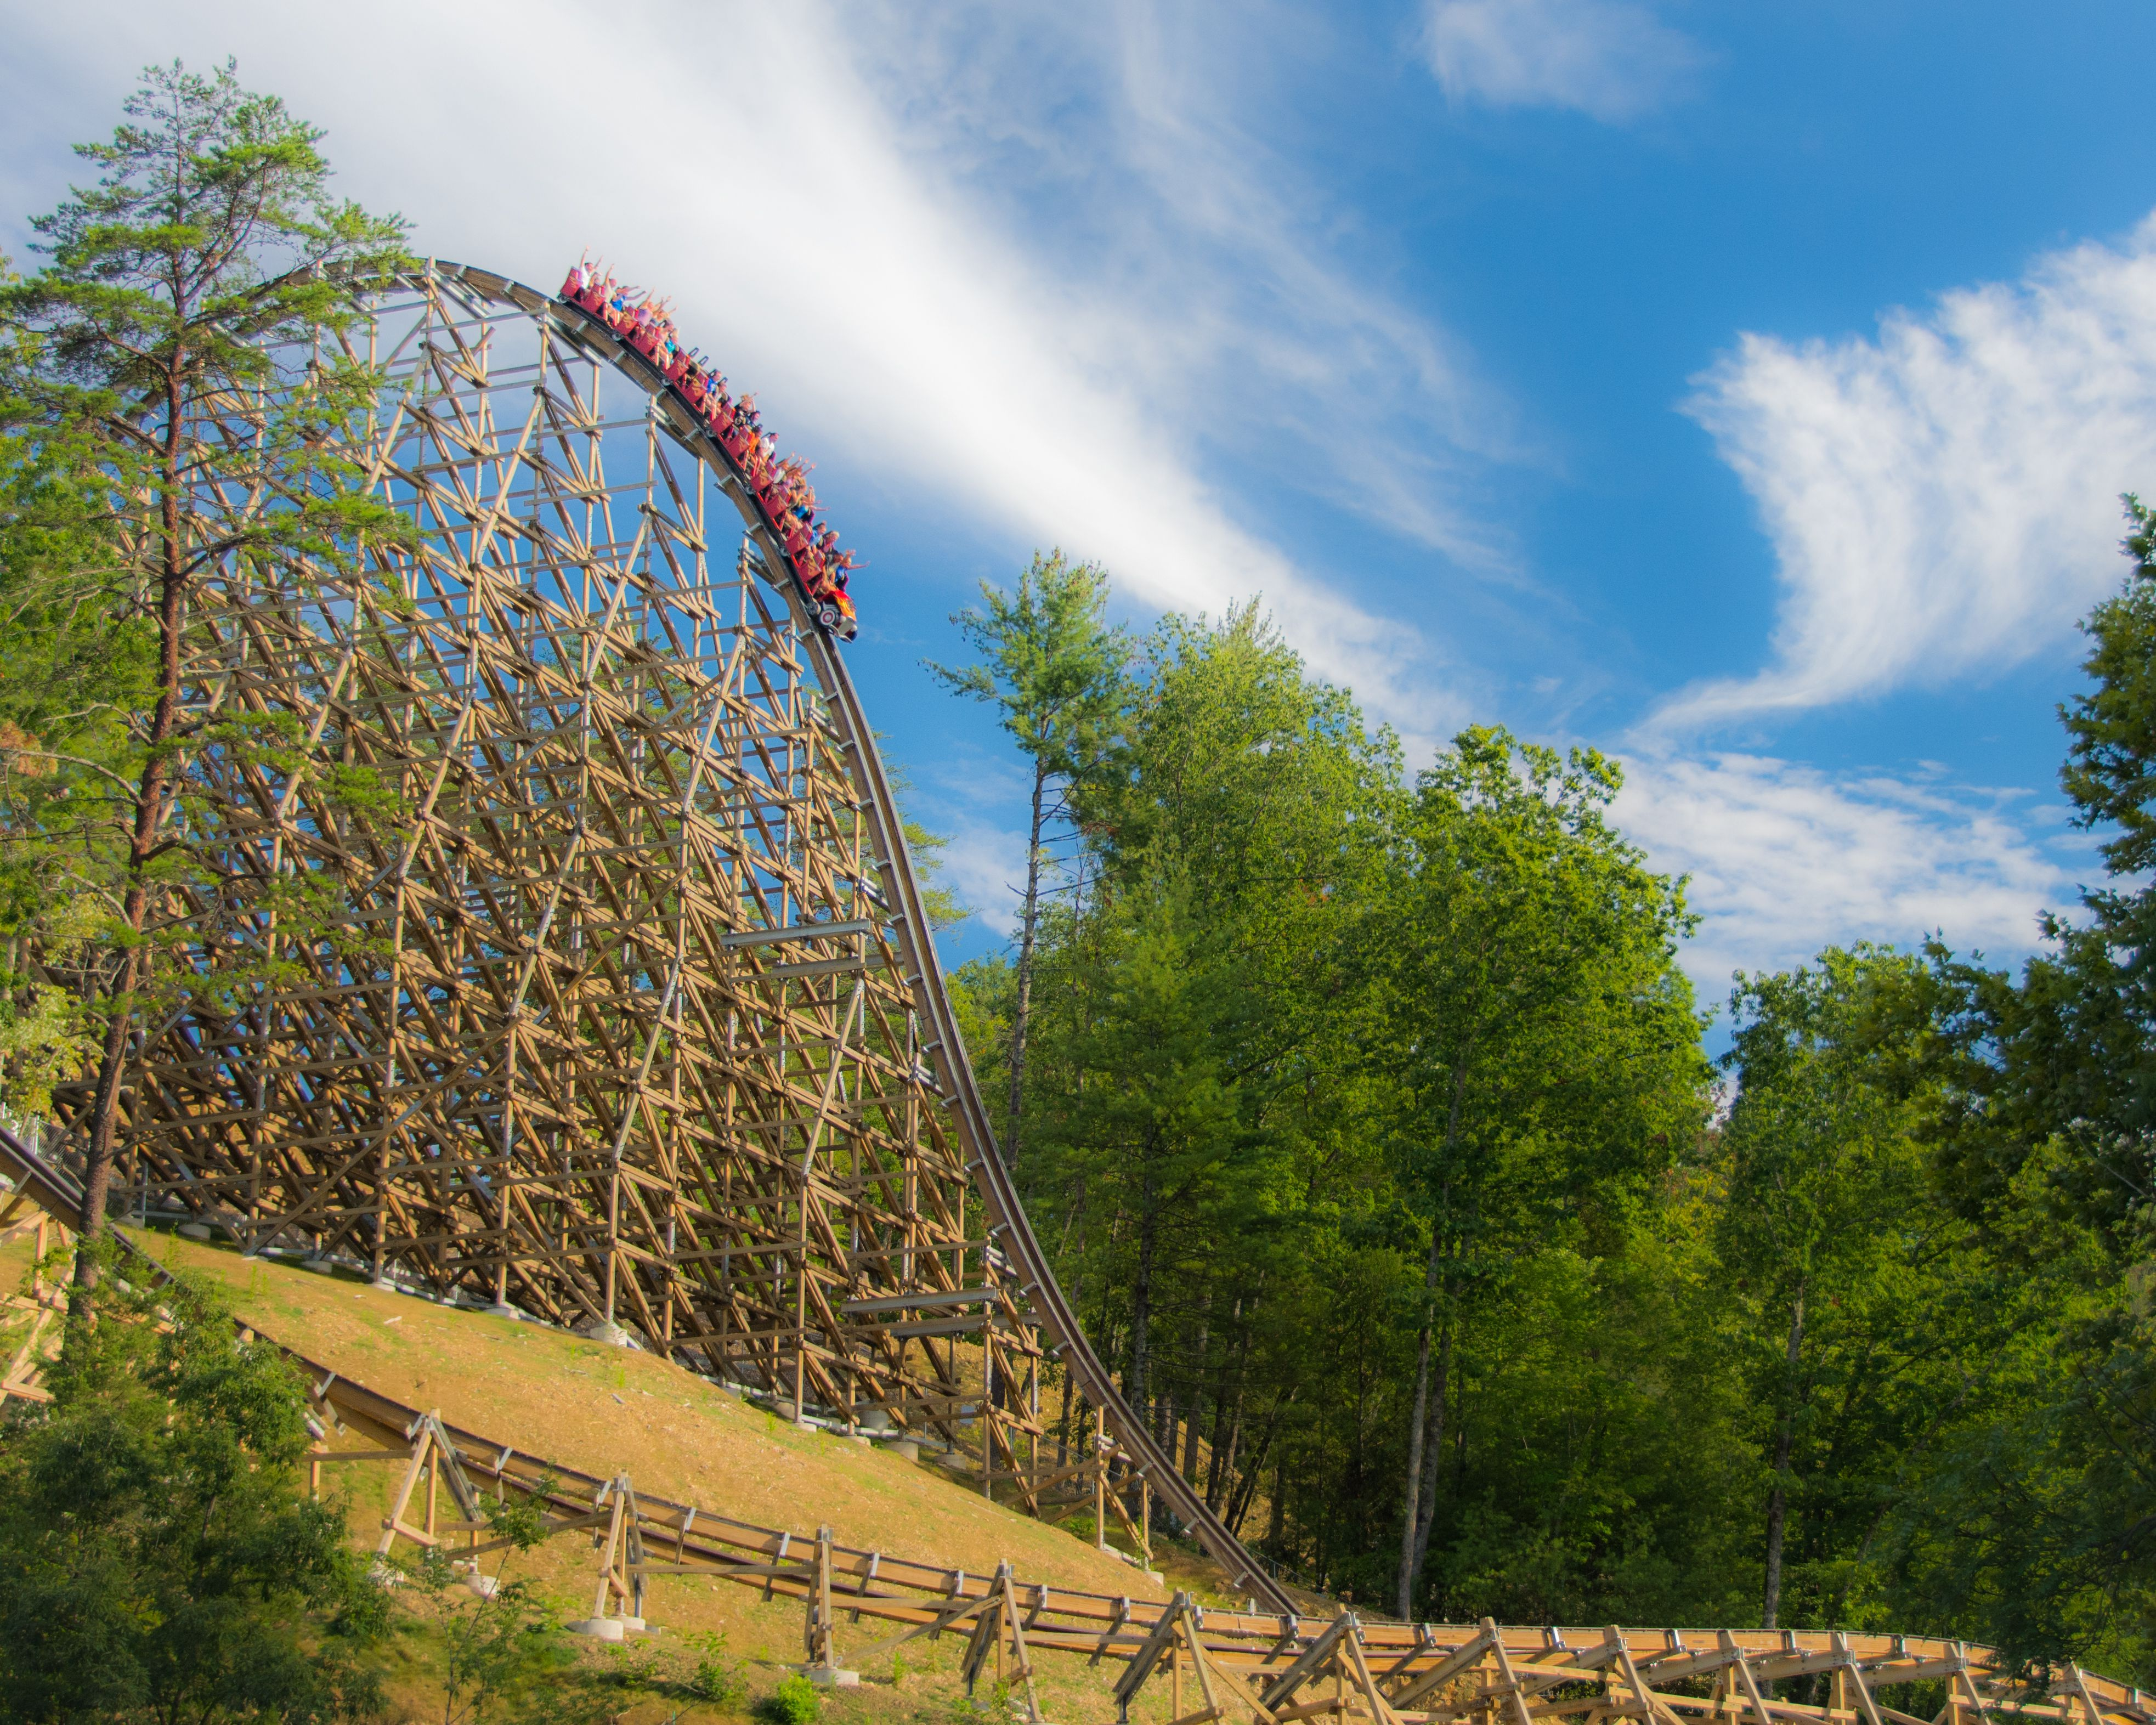 Dollywood's Lightning Rod - Review of the Roller Coaster